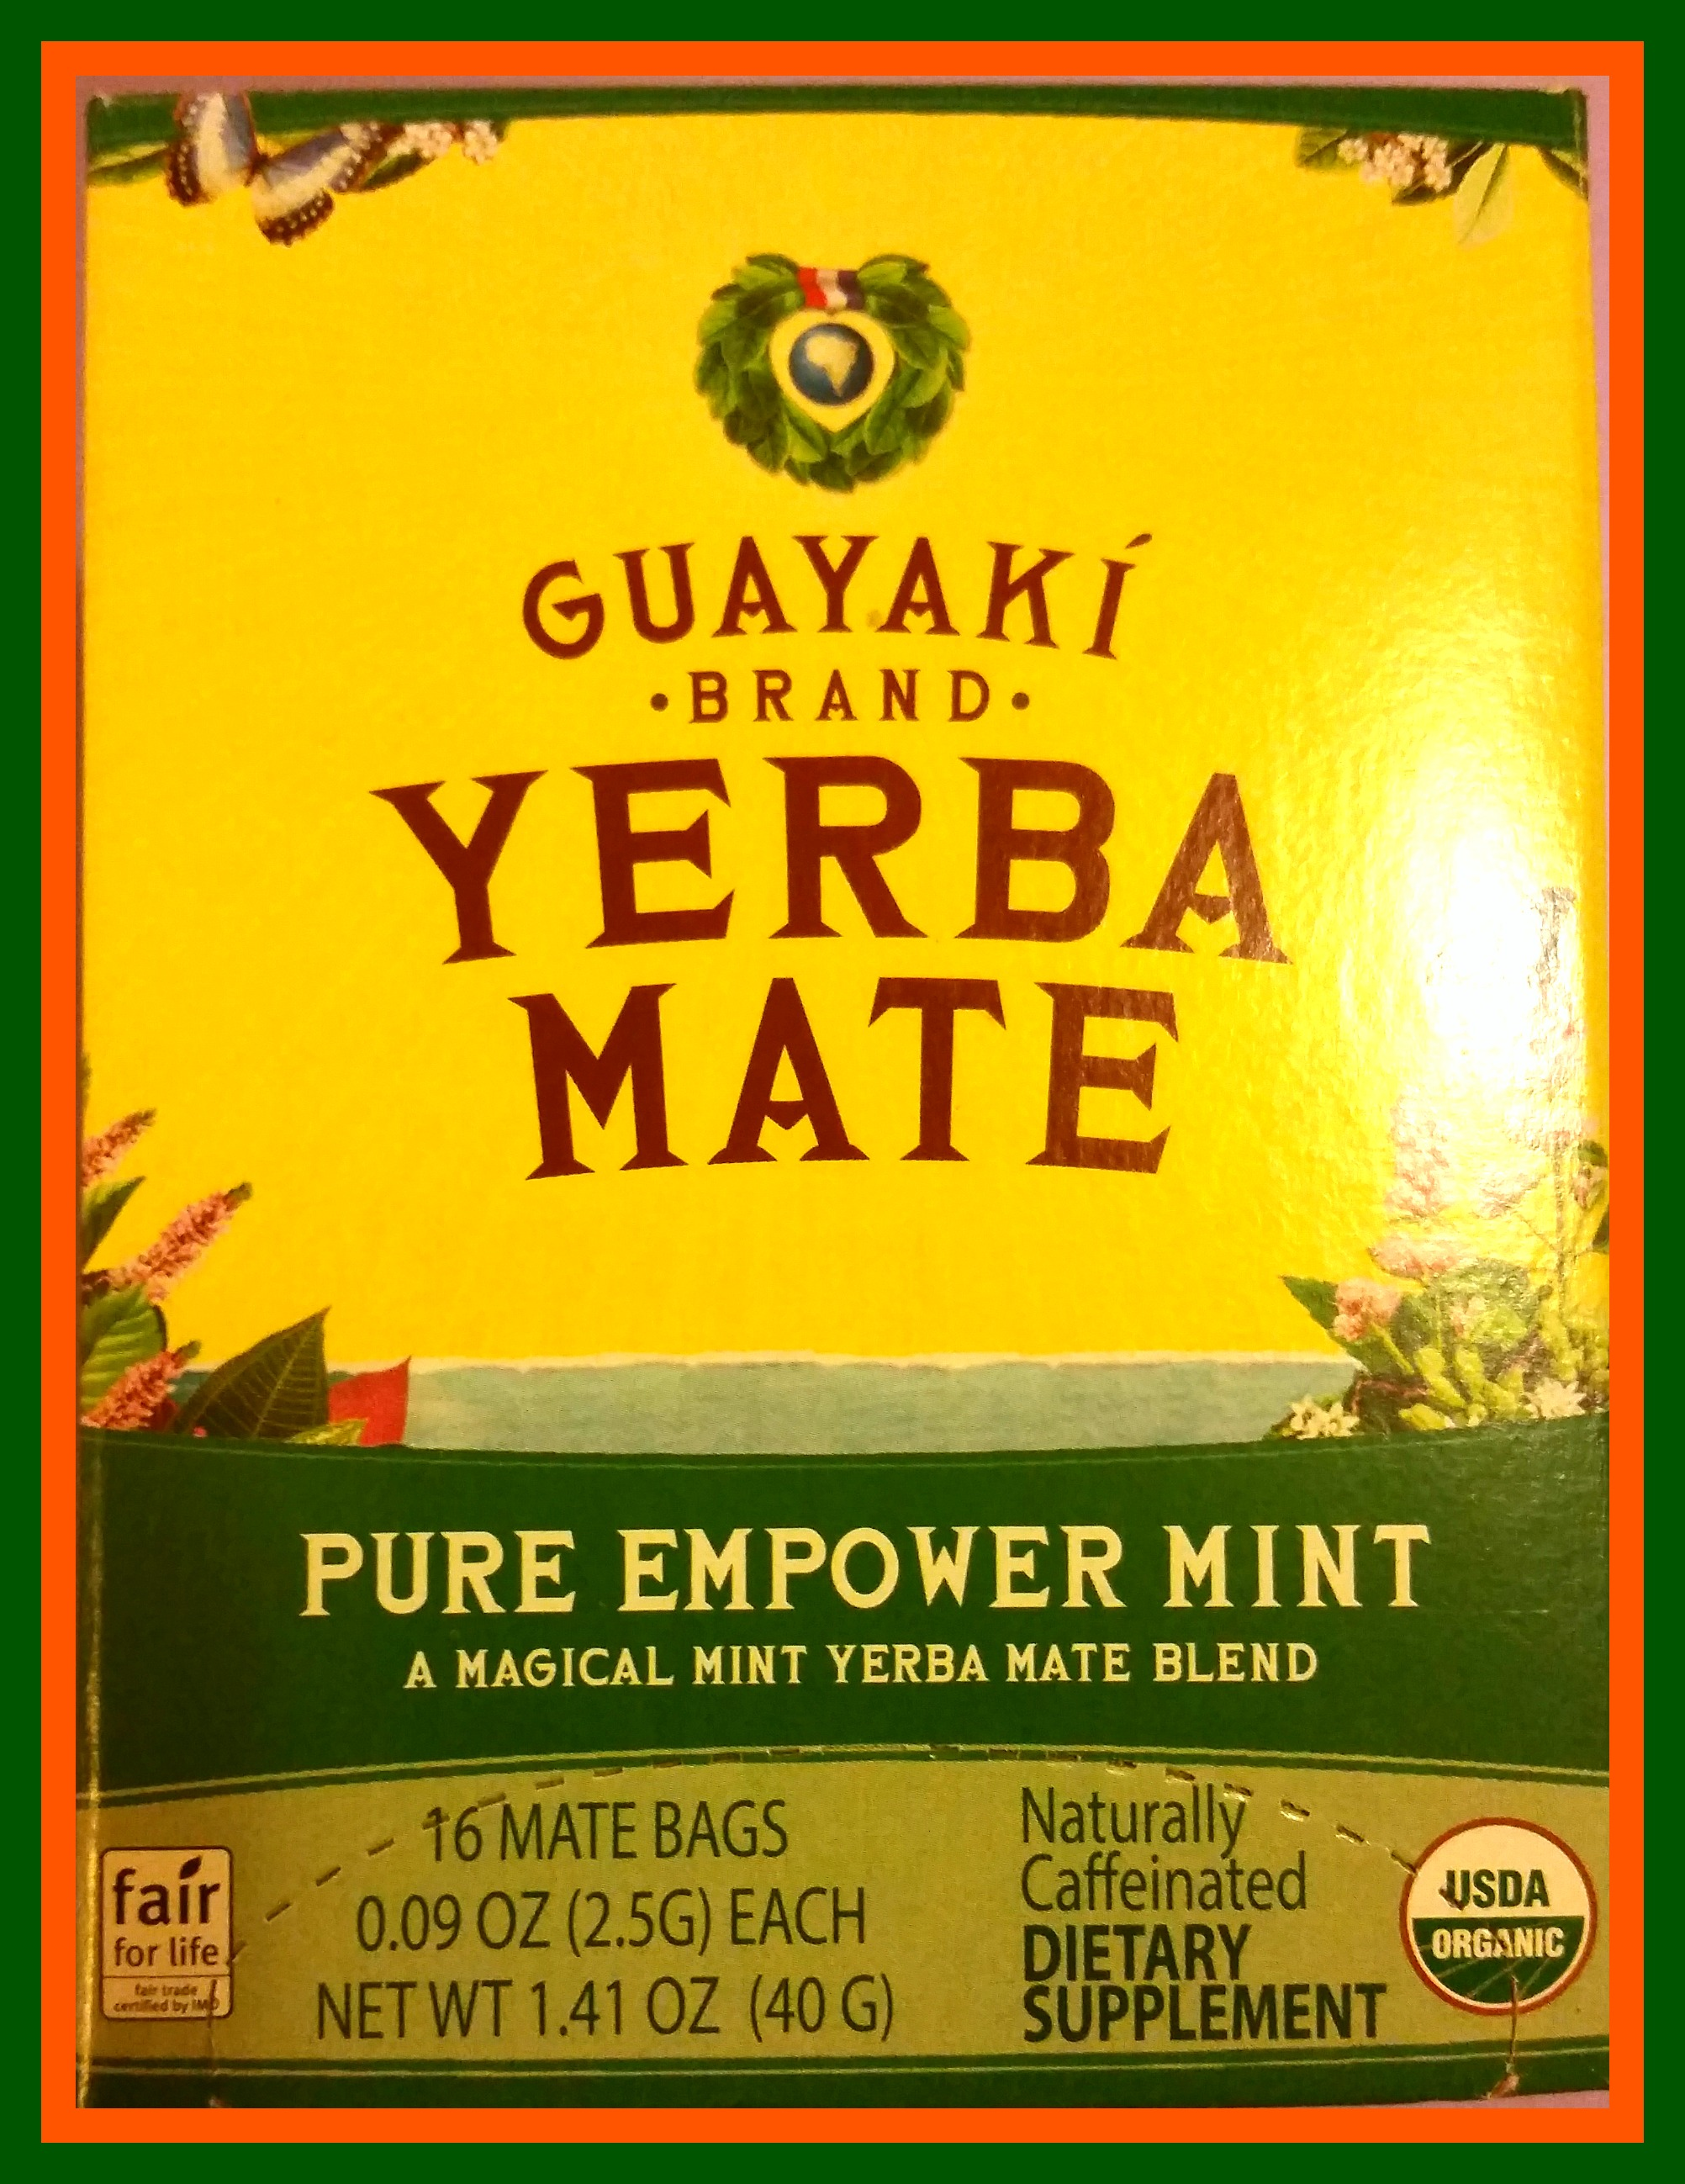 Image of Guayaki Yerba Mate Tea Box